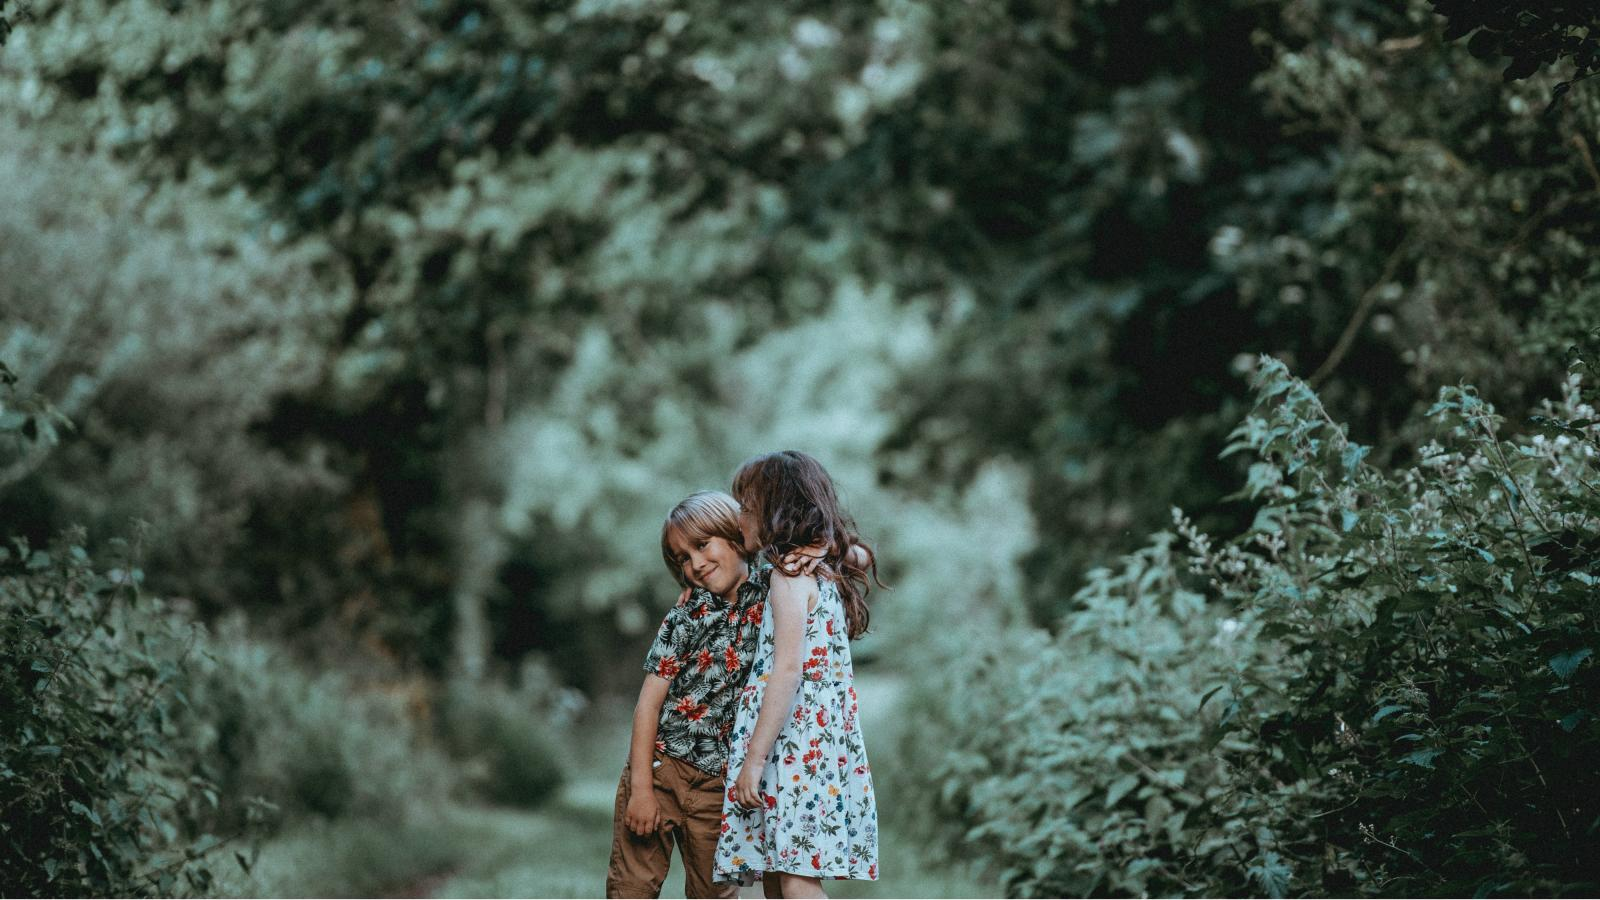 More Evidence That Growing Up Poor May >> Kids Who Grow Up Near Green Space Have Better Mental Health Quartz